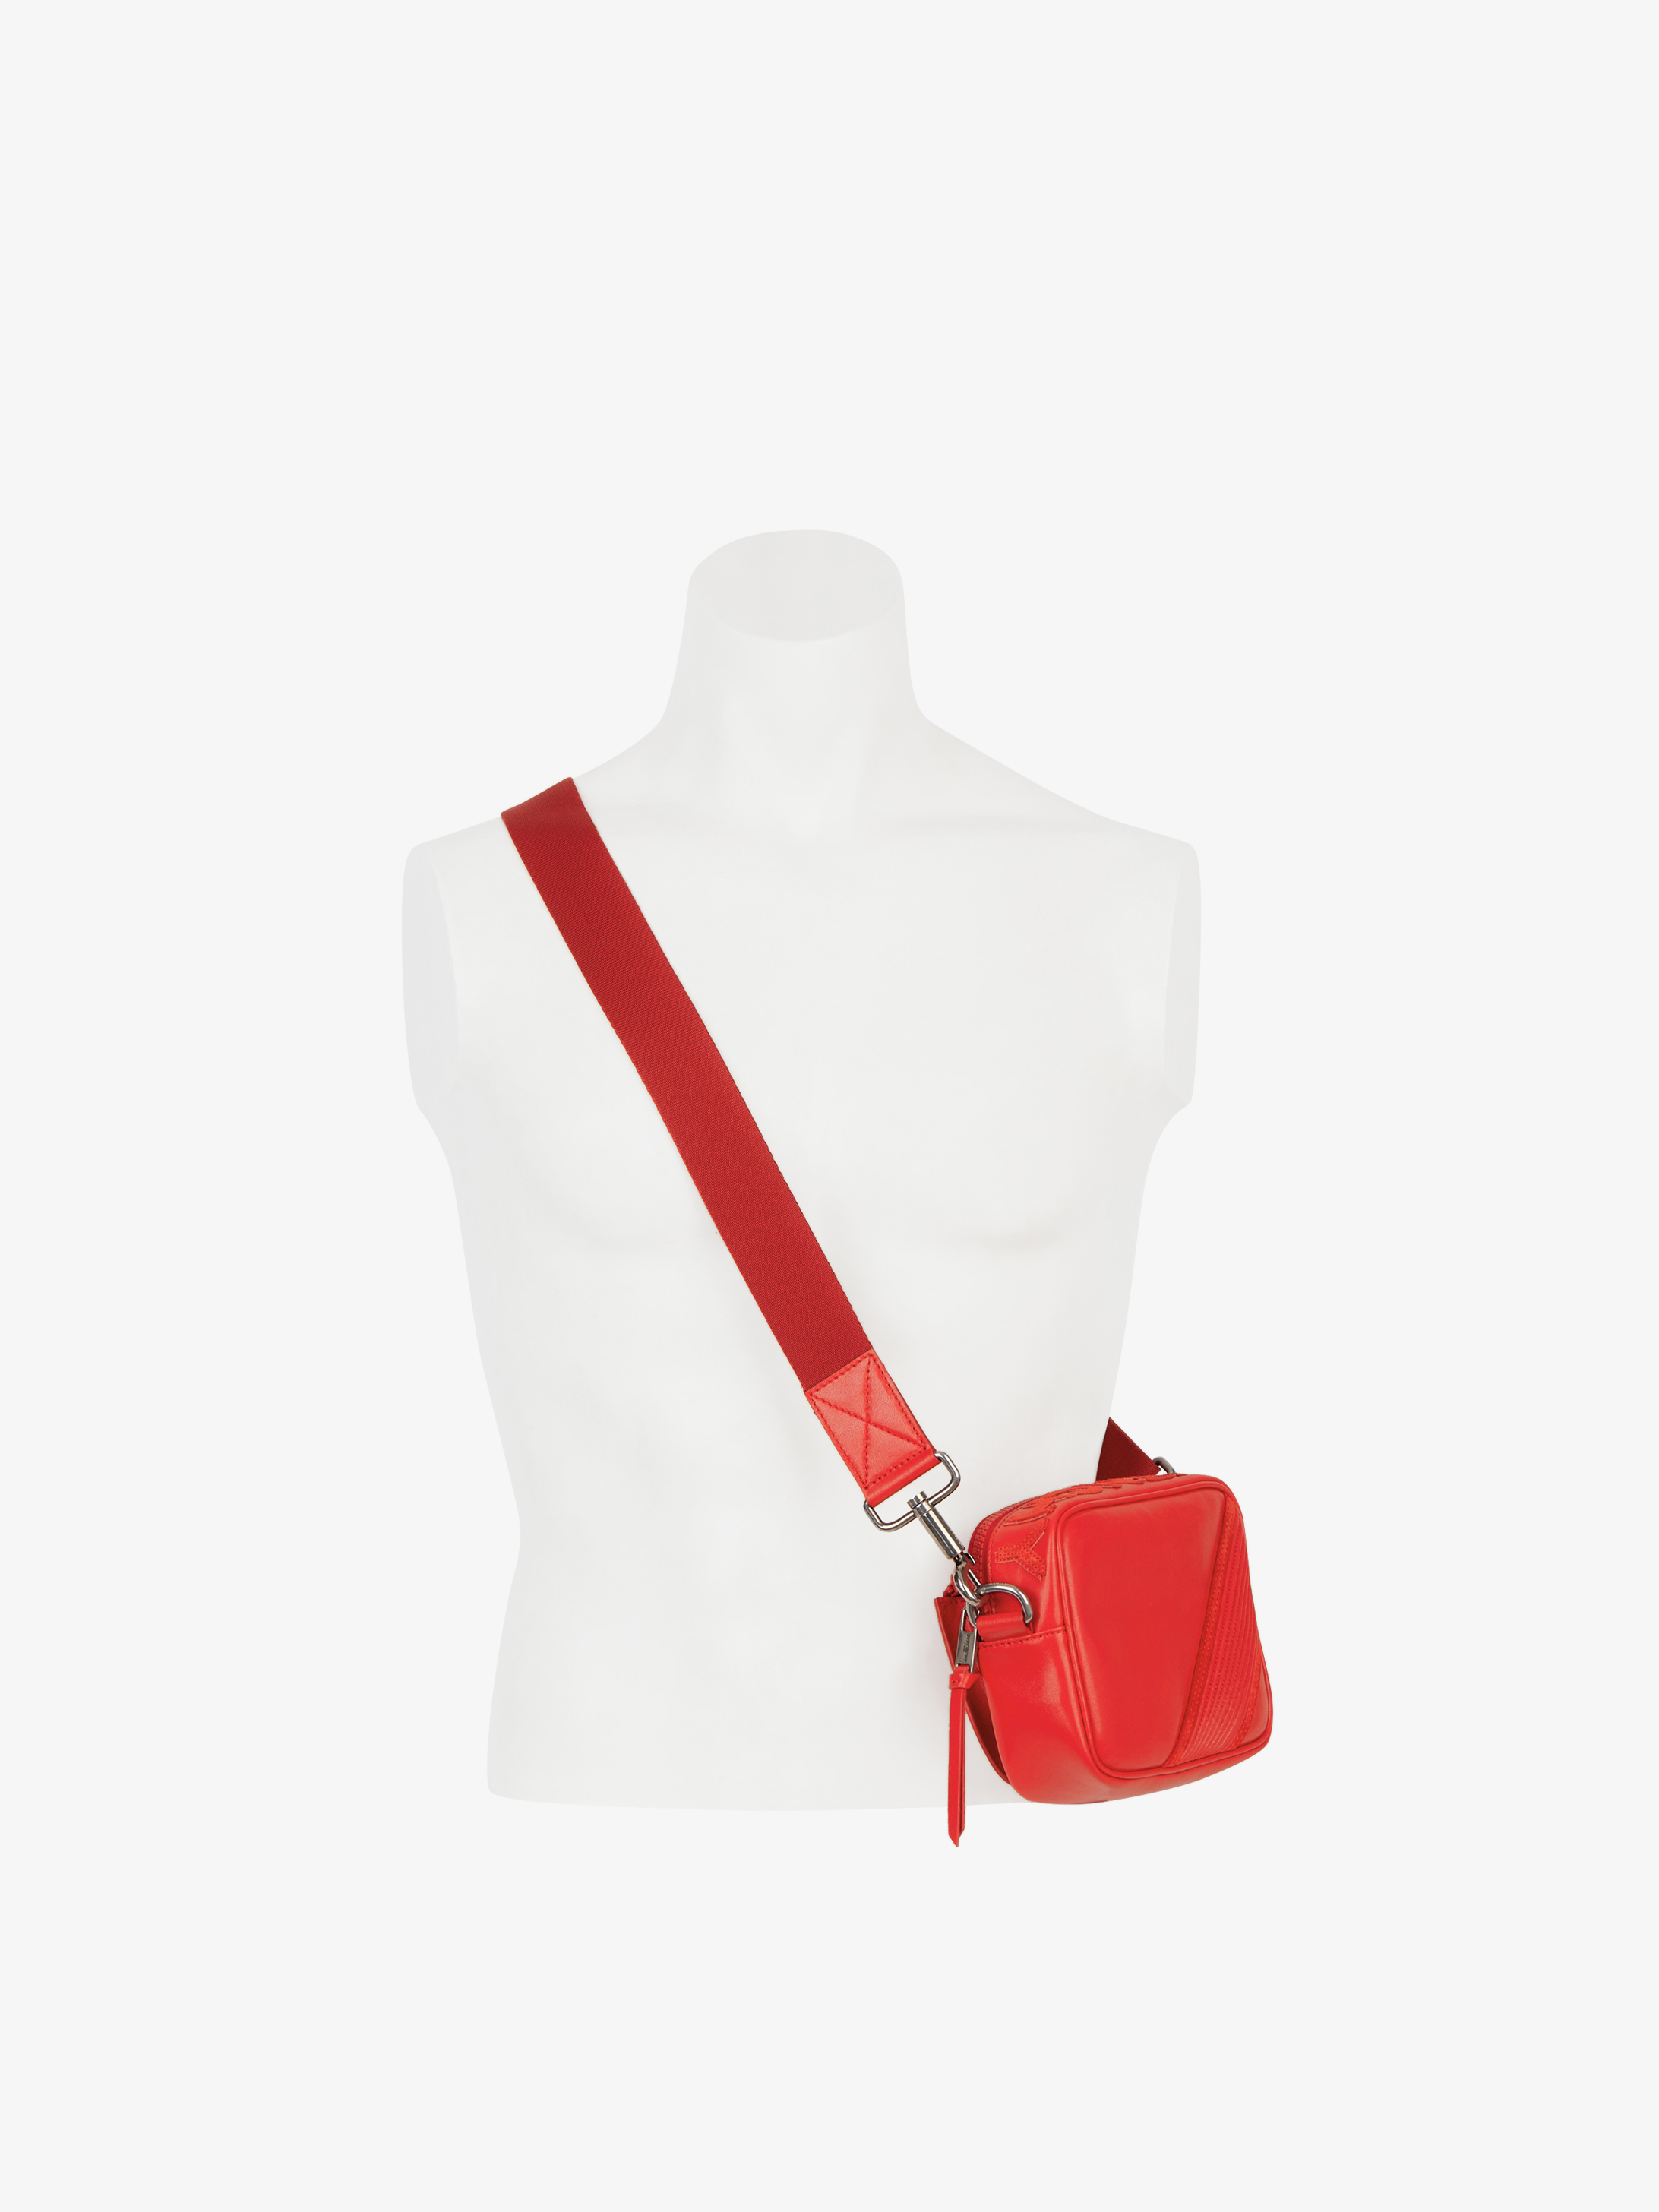 Reverse GIVENCHY crossbody bag in leather and suede